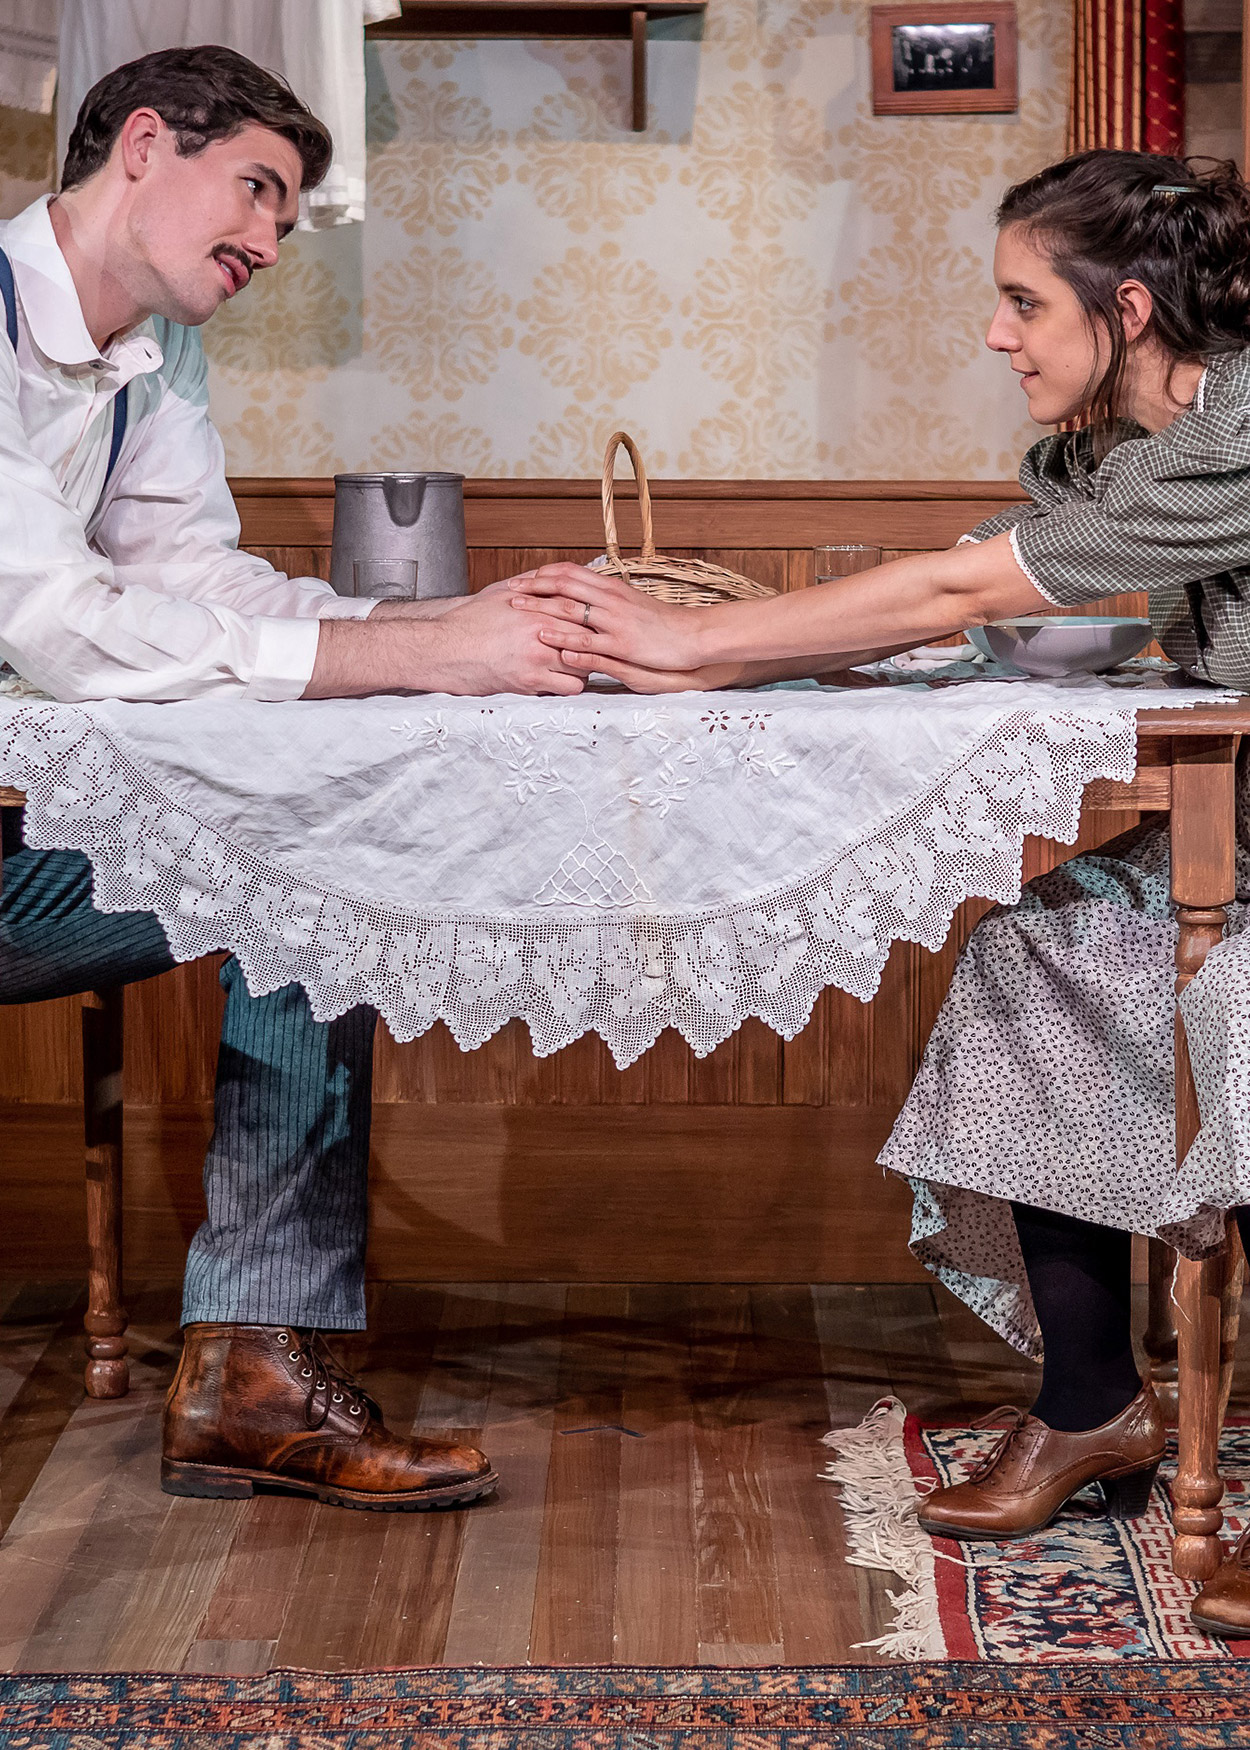 Production photo from Black Tom Island (2018). The play is set in 1916. A man and a woman sit at opposite sides of a table and lean towards each other to hold hands. The man is wearing a white shirt, blue pants and blue suspenders. The woman is wearing a black and white checkered dress and a patterned appron.